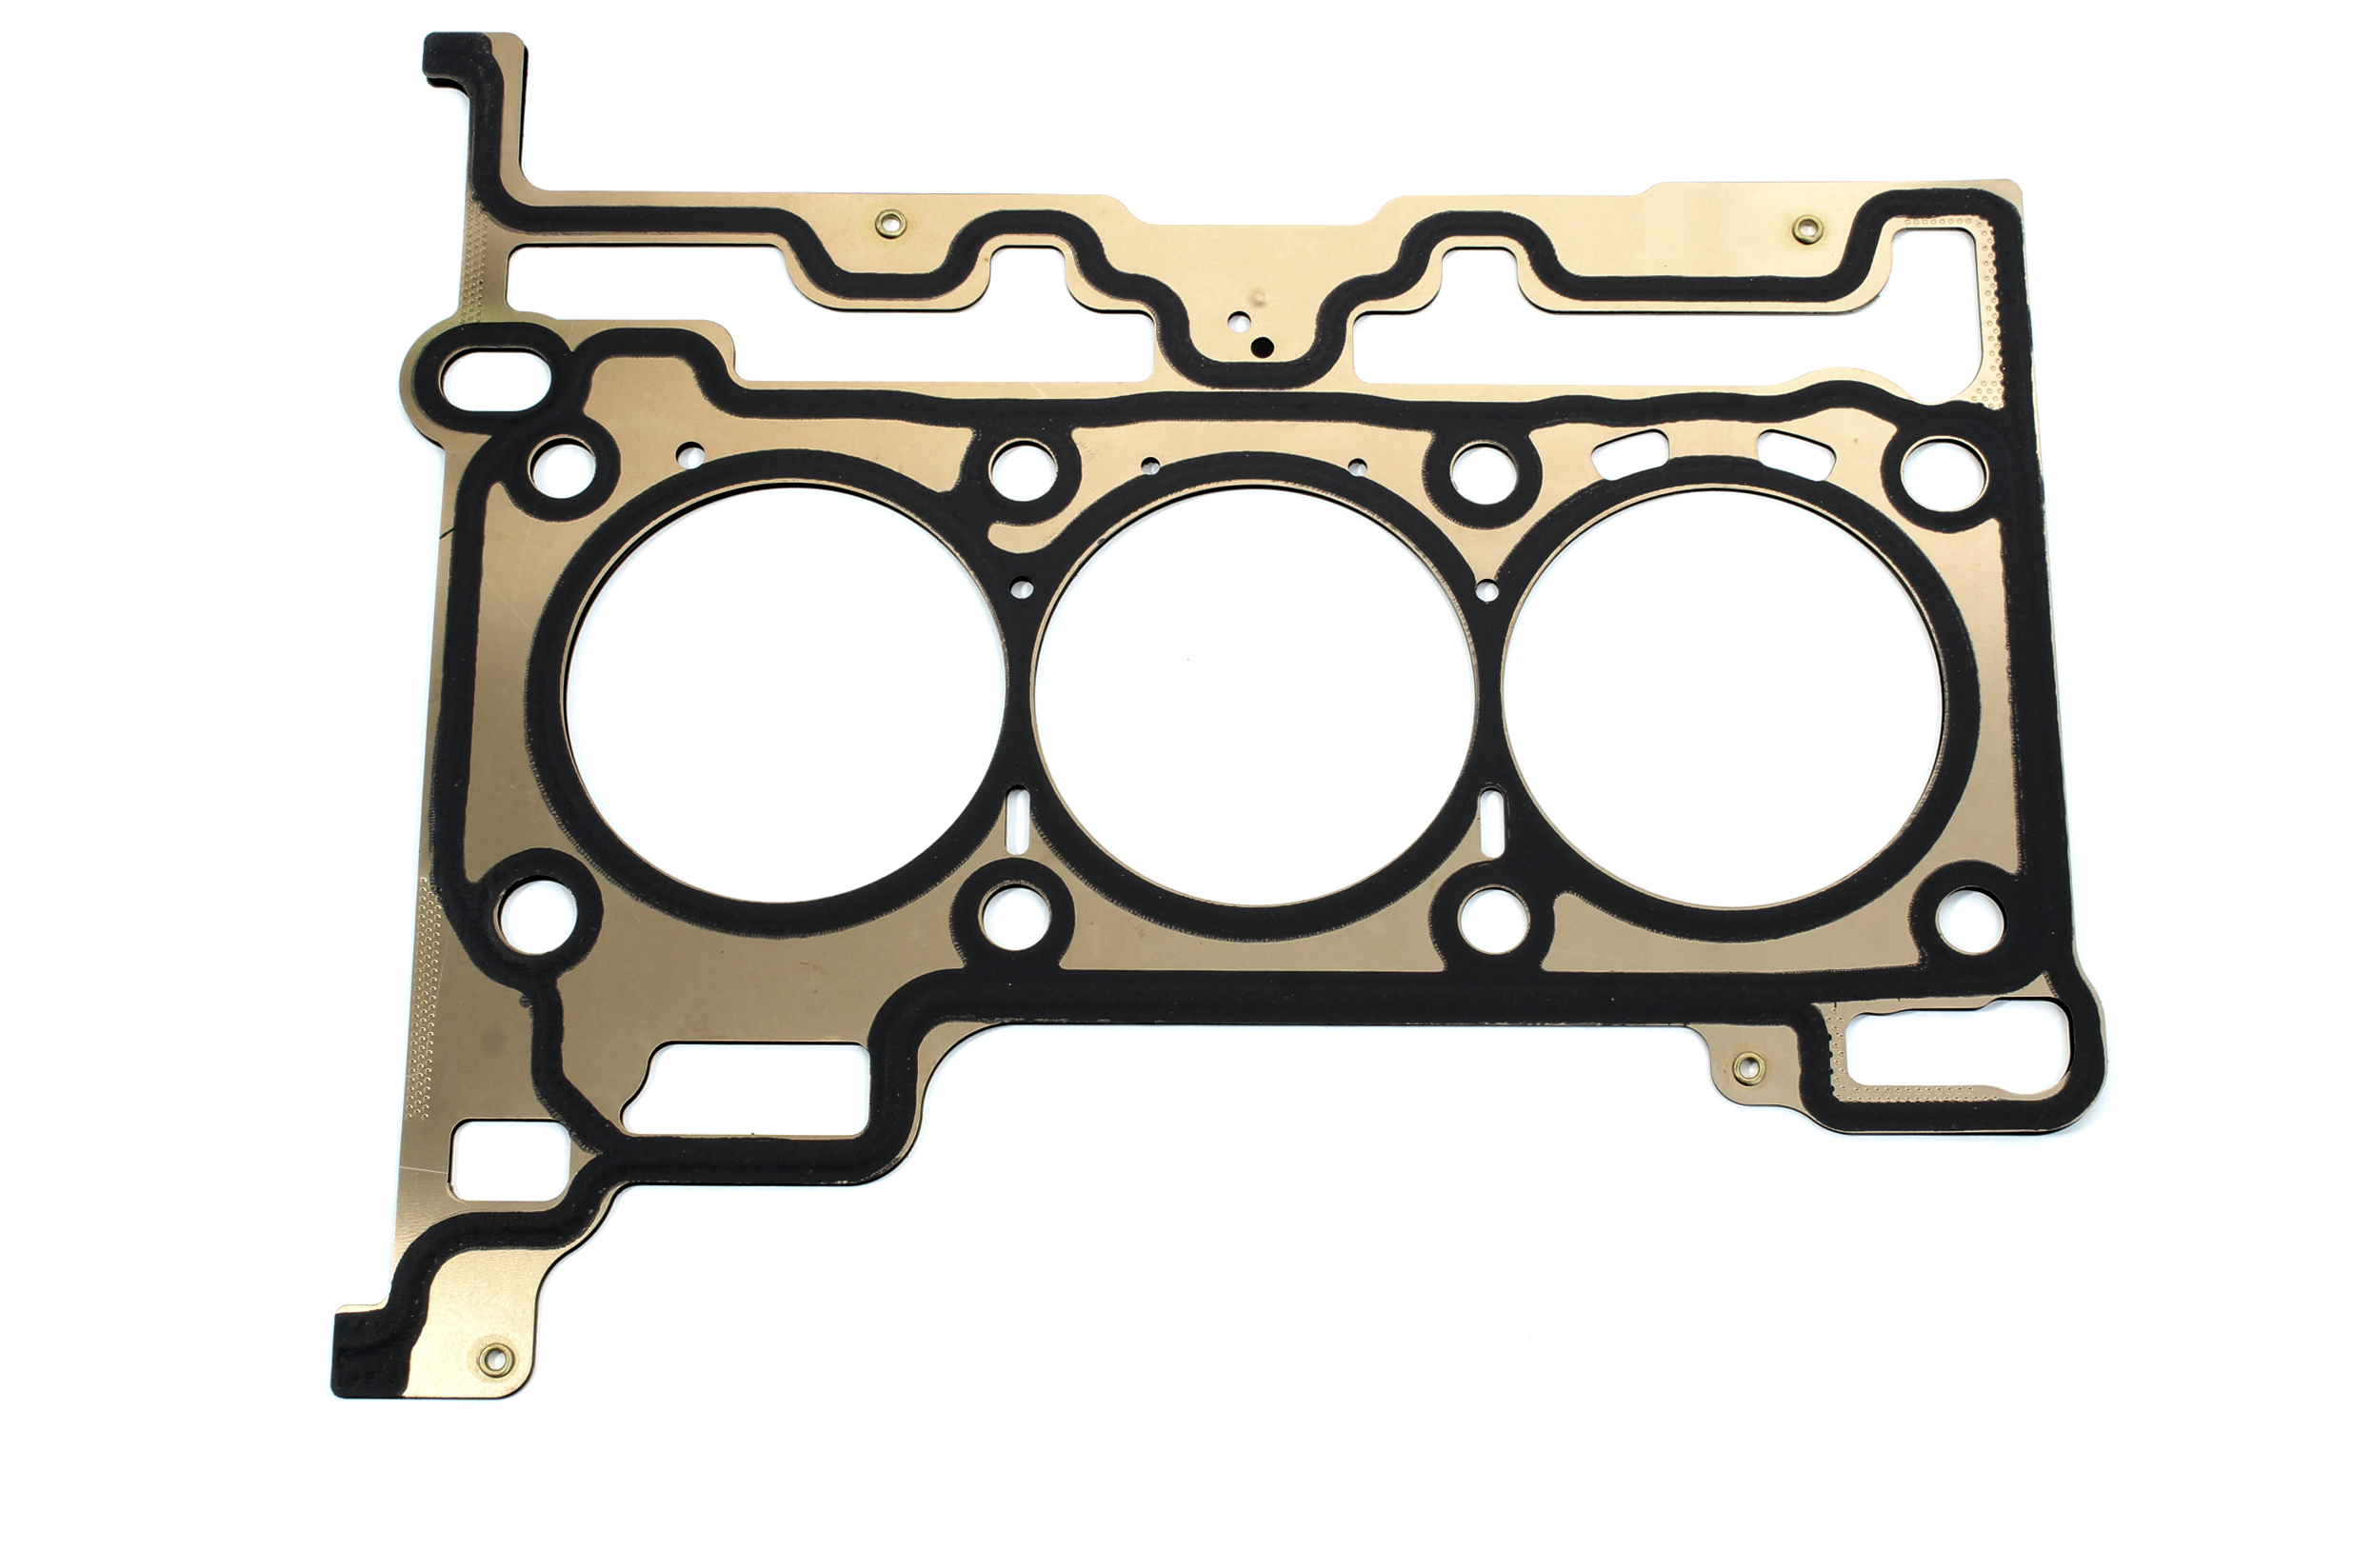 The cylinder head gasket Seal Ford's 1.0 EcoBoost M1CA M1CB M1DA M1DC HG1650 NEW